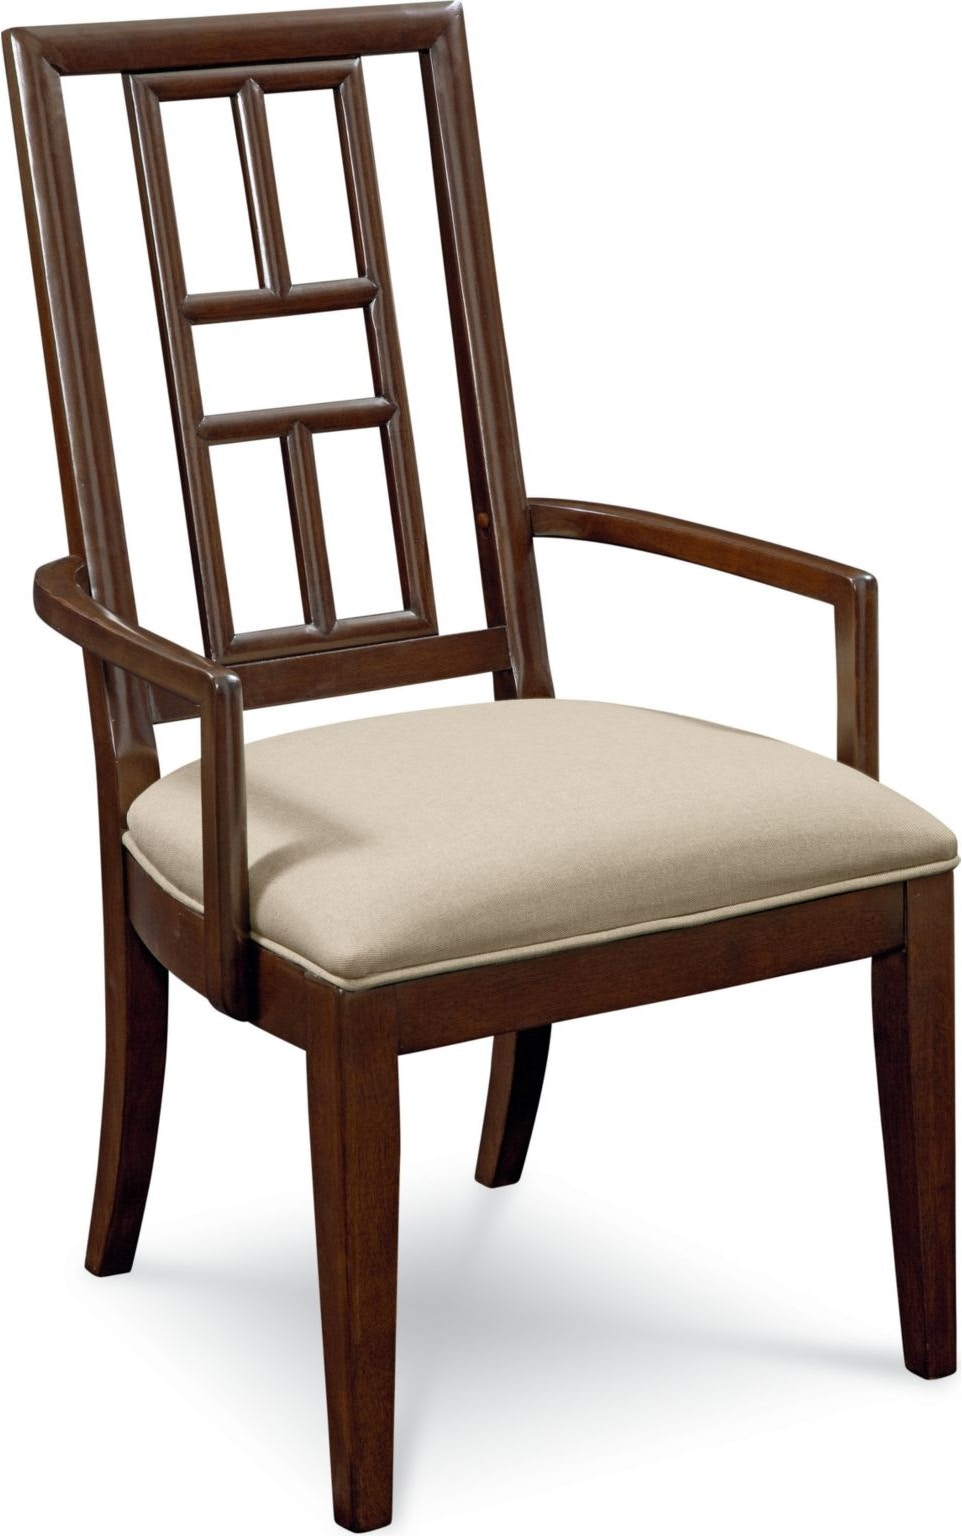 Thomasville Dining Room Arm Chair 822 Bacons